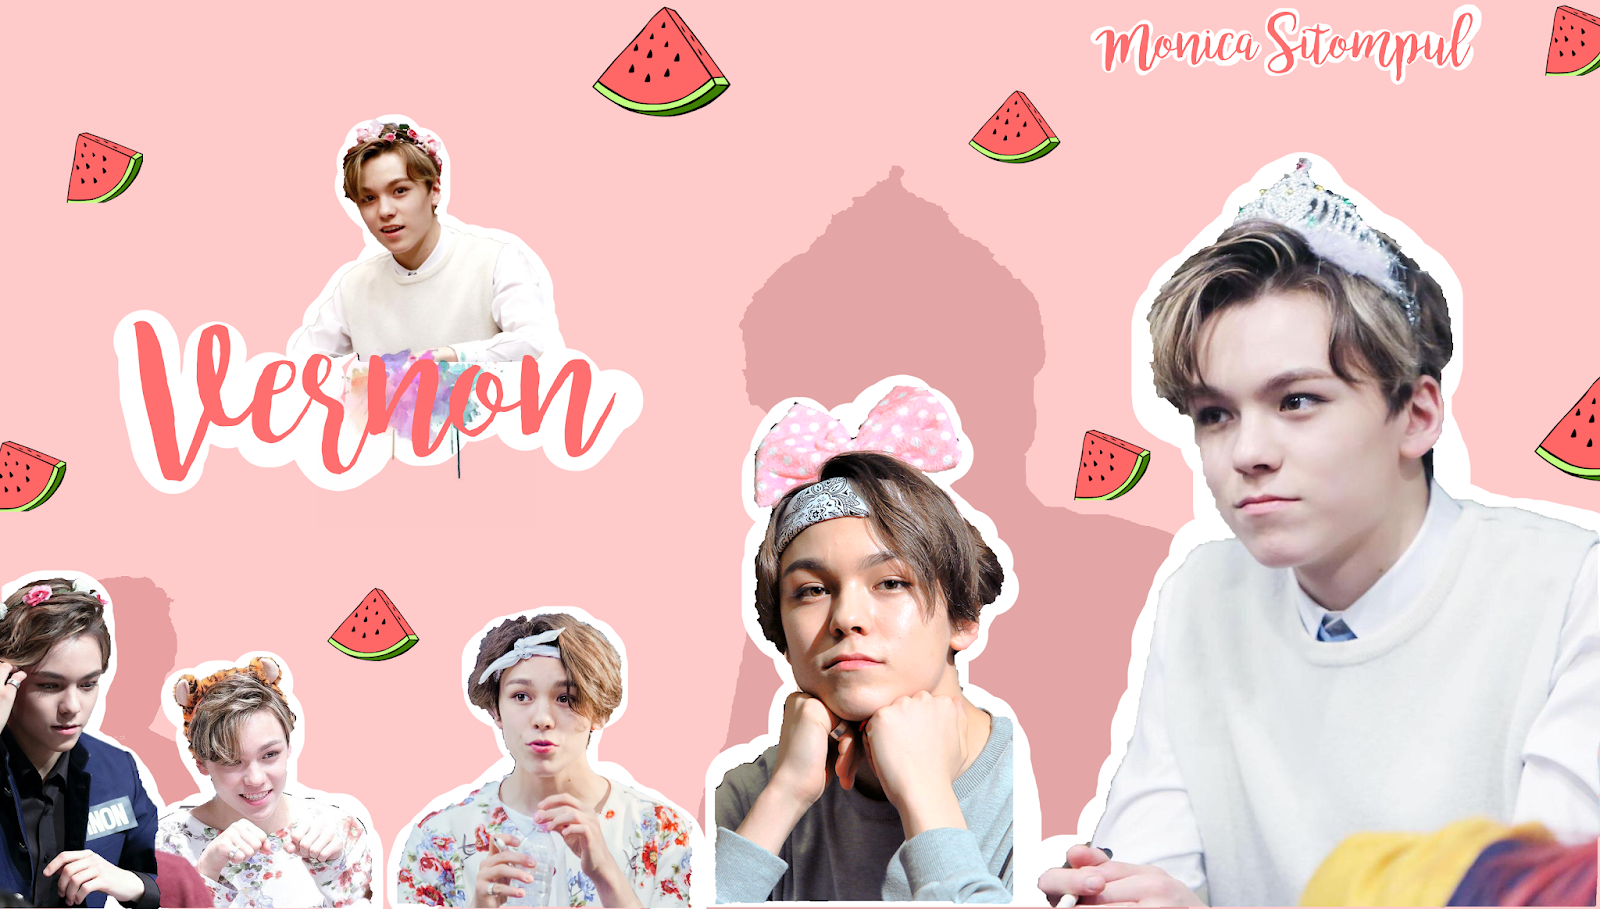 I MADE SOME EDITS FOR THESE KOREAN DUDES